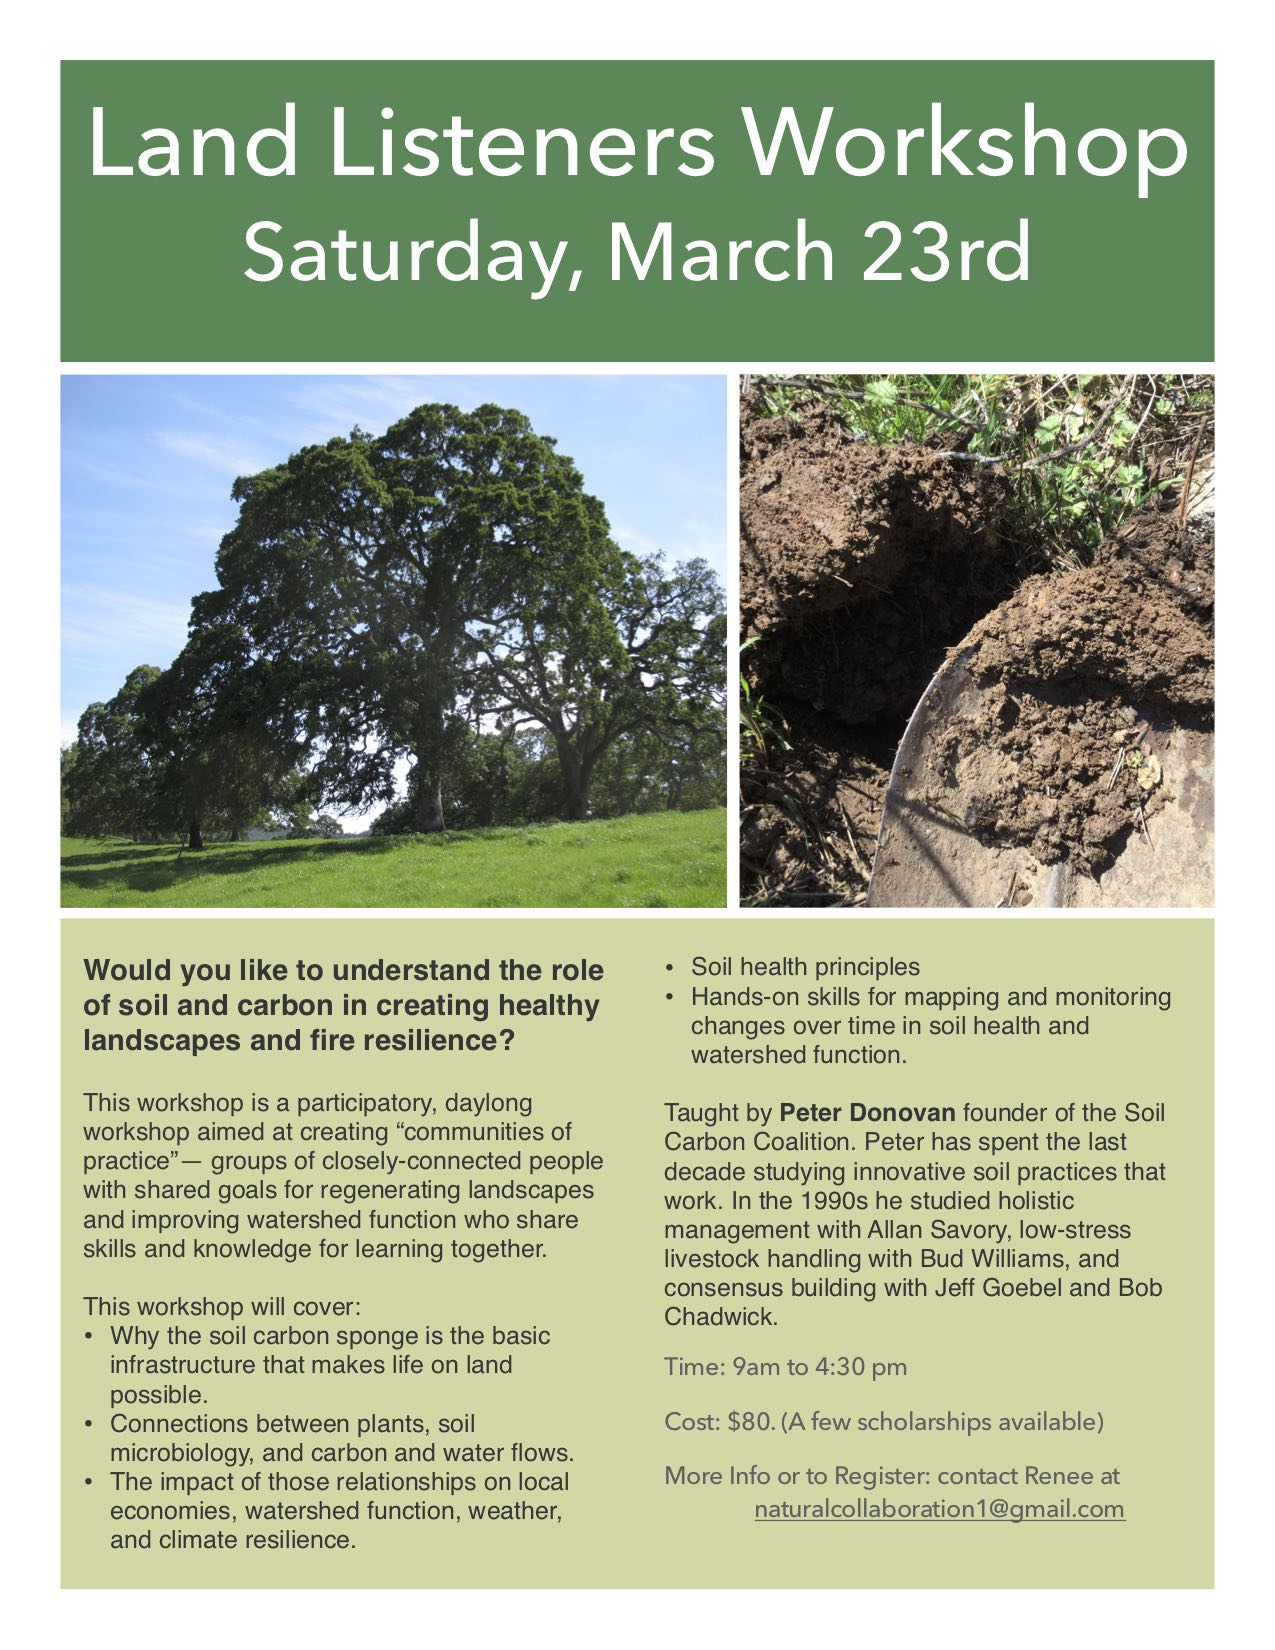 Workshop to be held at Laughing Oak Farm in Rough & Ready, address to be provided upon registration